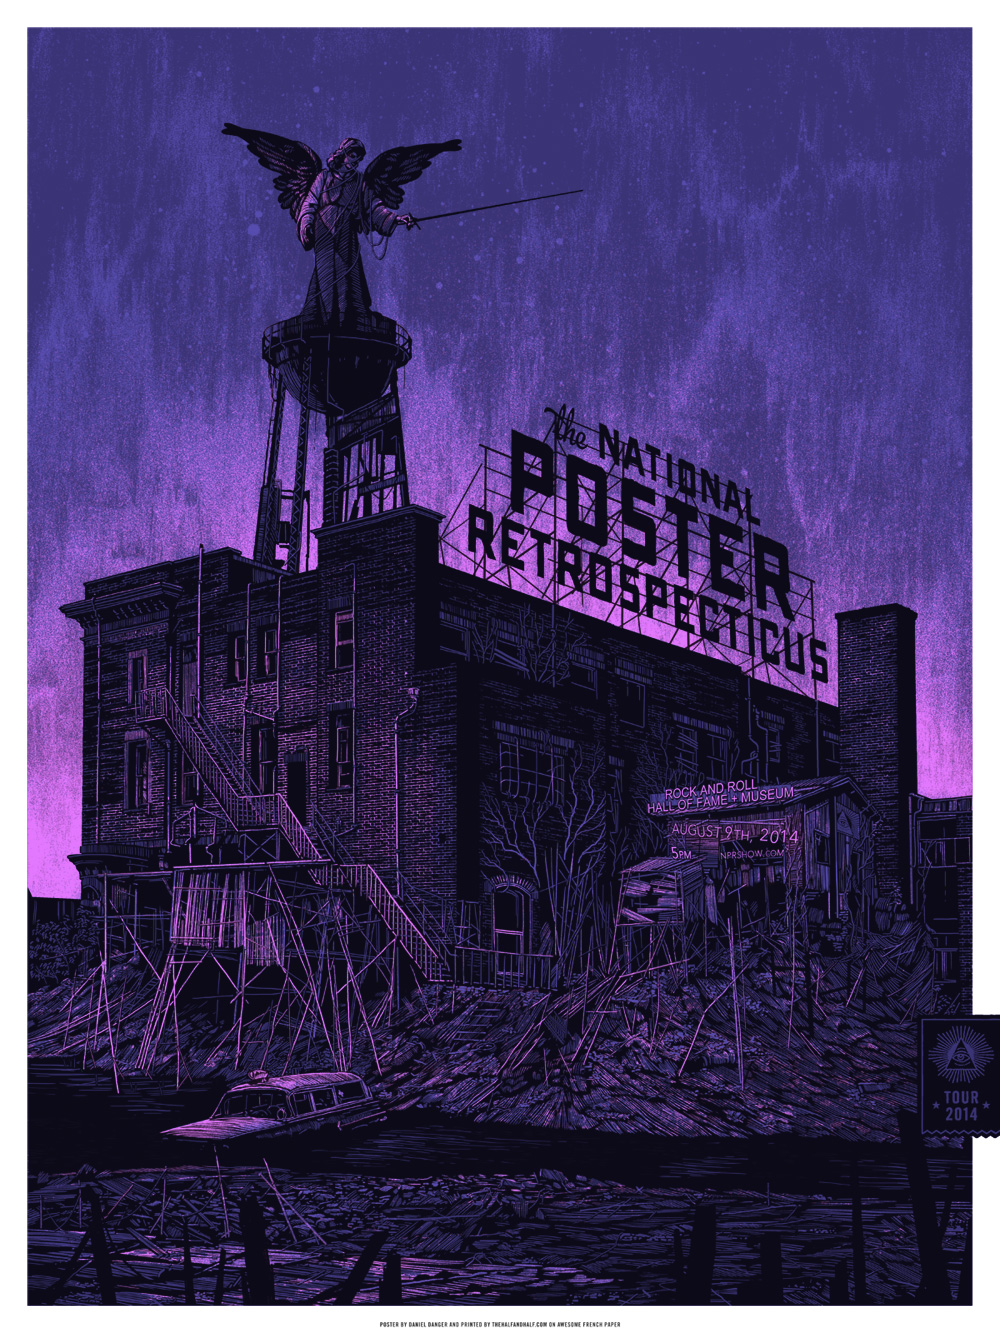 The National Poster Retrospecticus @ Cotton Candy Machine, Brooklyn: The-NPR-Rock-Hall-Daniel-Danger.jpg